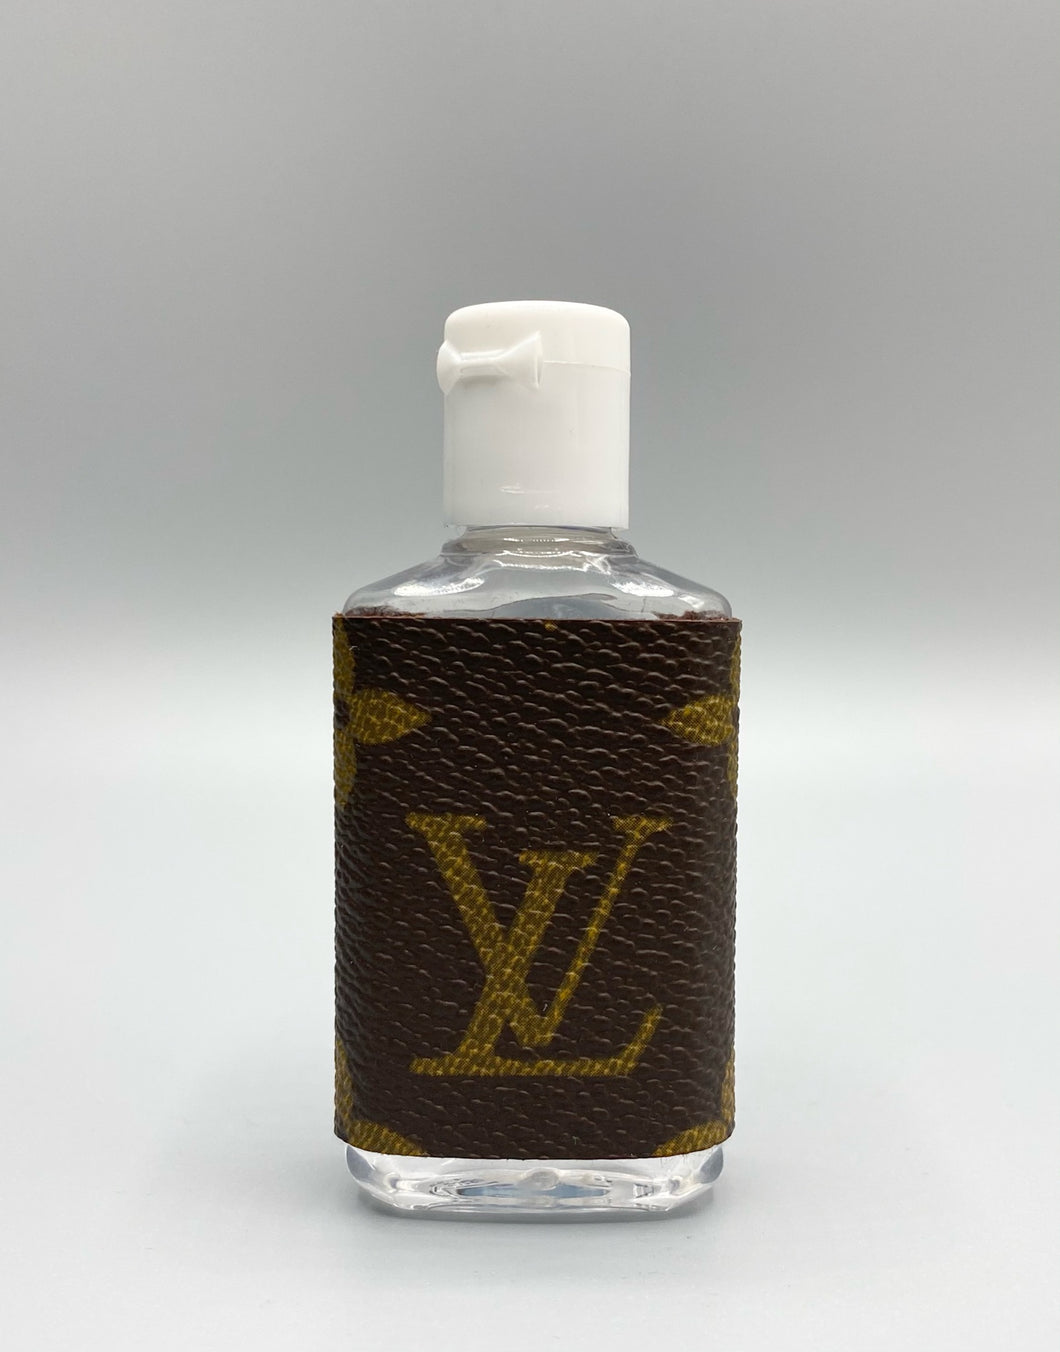 Monogram Hand Sanitizer